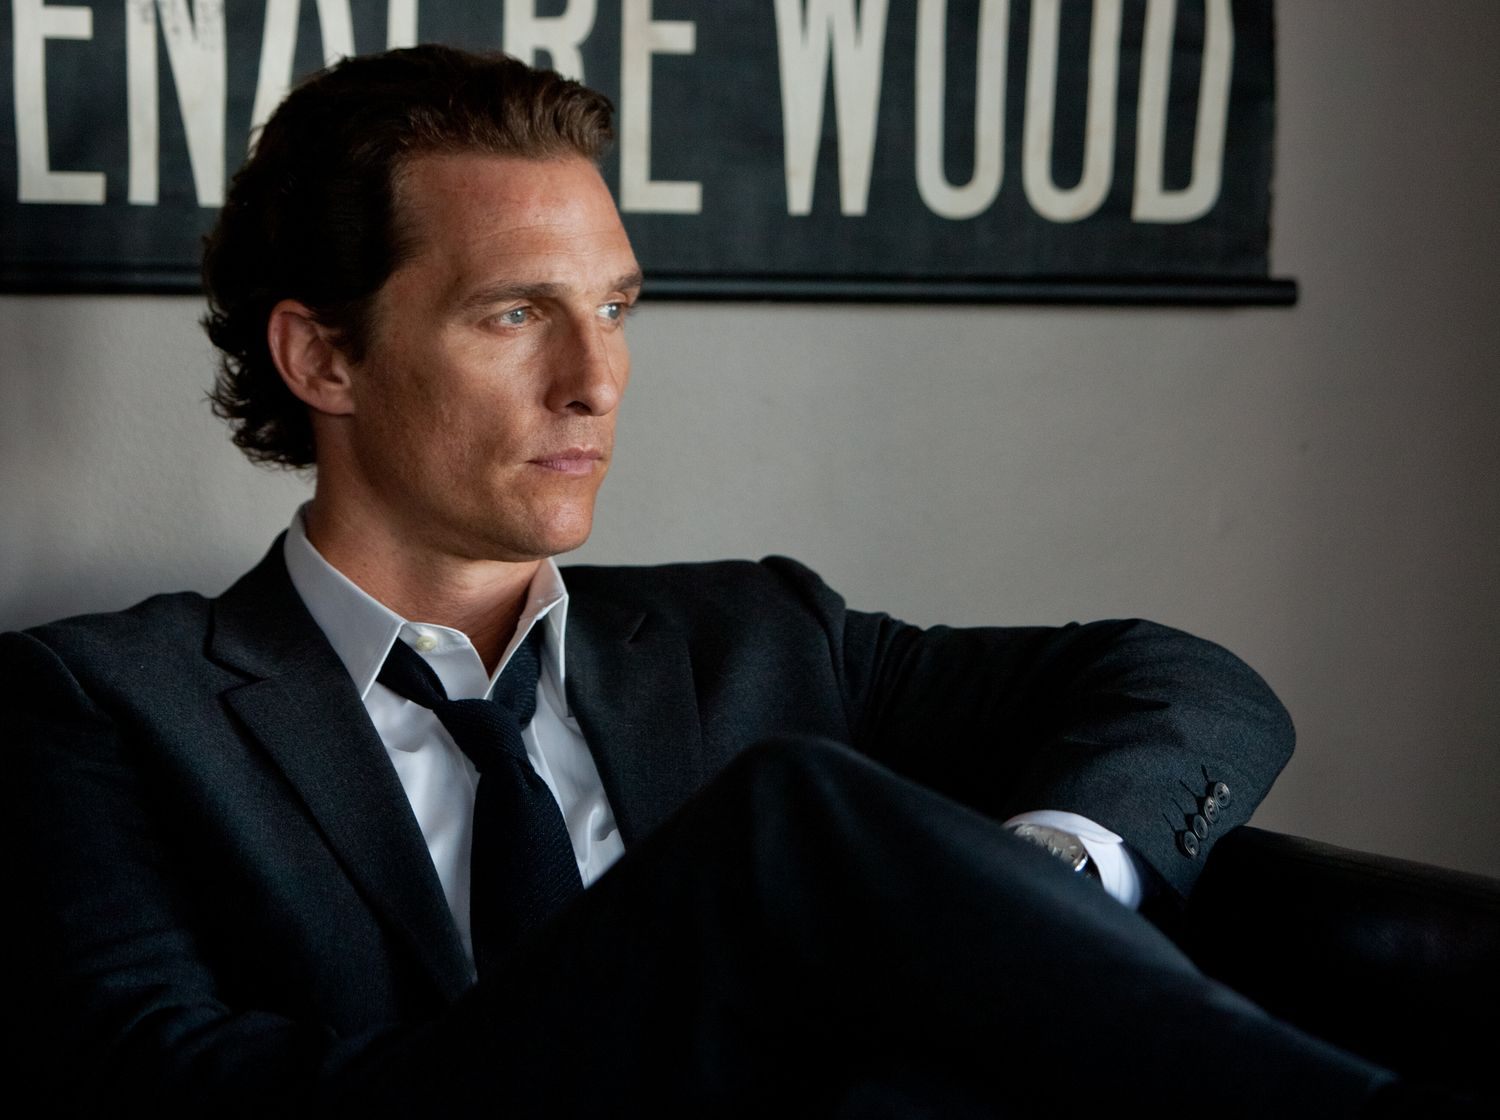 the lincoln lawyer The lincoln lawyer is a brilliant movie about the flaws in the justice system, and one man who tries to correct them i can imagine how some people would have issues with the pacing the movie moves along at a very fast speed.